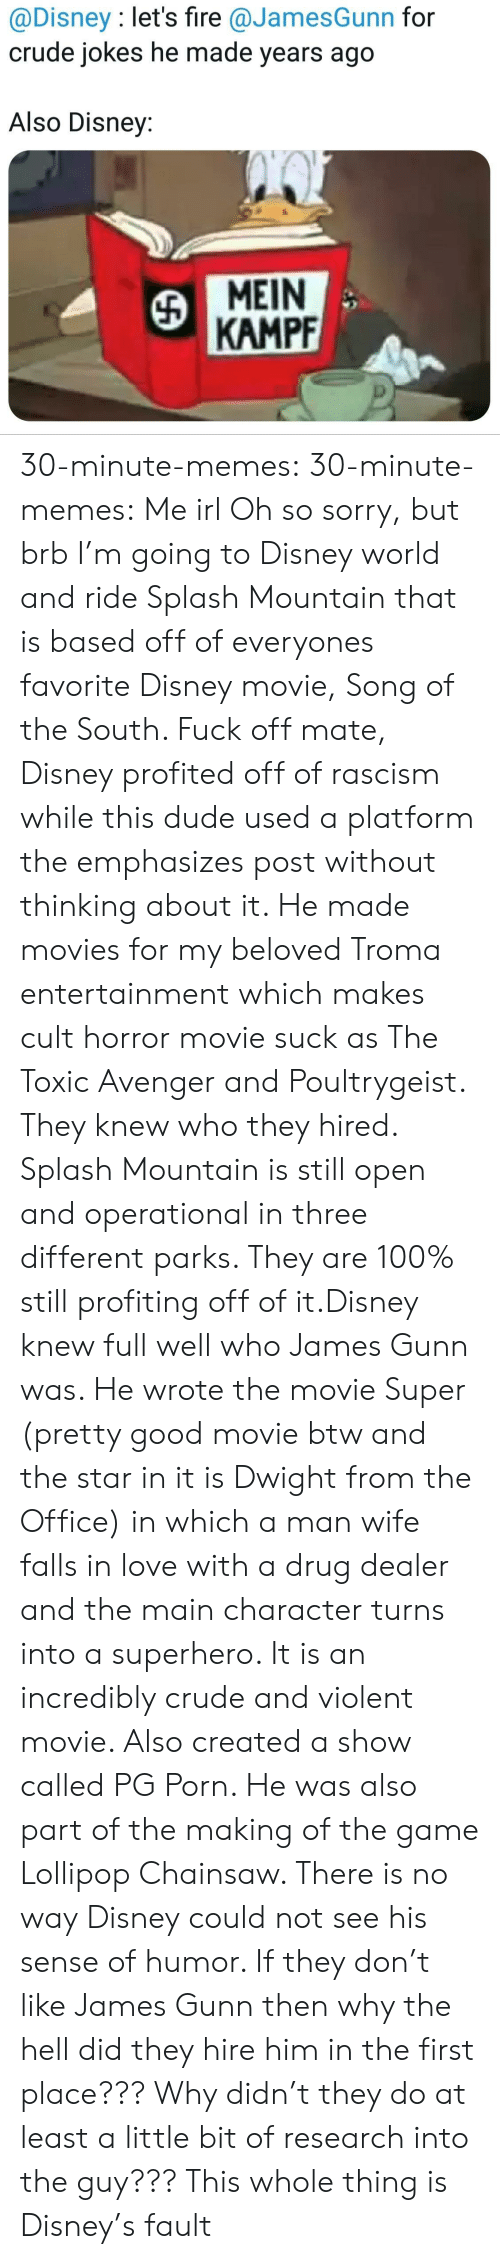 Imdb: @Disney : let's fire @JamesGunn for  crude jokes he made years ago  Also Disney:  MEIN  KAMPF 30-minute-memes: 30-minute-memes: Me irl Oh so sorry, but brb I'm going to Disney world and ride Splash Mountain that is based off of everyones favorite Disney movie, Song of the South.  Fuck off mate, Disney profited off of rascism while this dude used a platform the emphasizes post without thinking about it. He made movies for my beloved Troma entertainment which makes cult horror movie suck as The Toxic Avenger and Poultrygeist. They knew who they hired.  Splash Mountain is still open and operational in three different parks. They are 100% still profiting off of it.Disney knew full well who James Gunn was. He wrote the movie Super (pretty good movie btw and the star in it is Dwight from the Office) in which a man wife falls in love with a drug dealer and the main character turns into a superhero. It is an incredibly crude and violent movie. Also created a show called PG Porn. He was also part of the making of the game Lollipop Chainsaw. There is no way Disney could not see his sense of humor. If they don't like James Gunn then why the hell did they hire him in the first place??? Why didn't they do at least a little bit of research into the guy??? This whole thing is Disney's fault